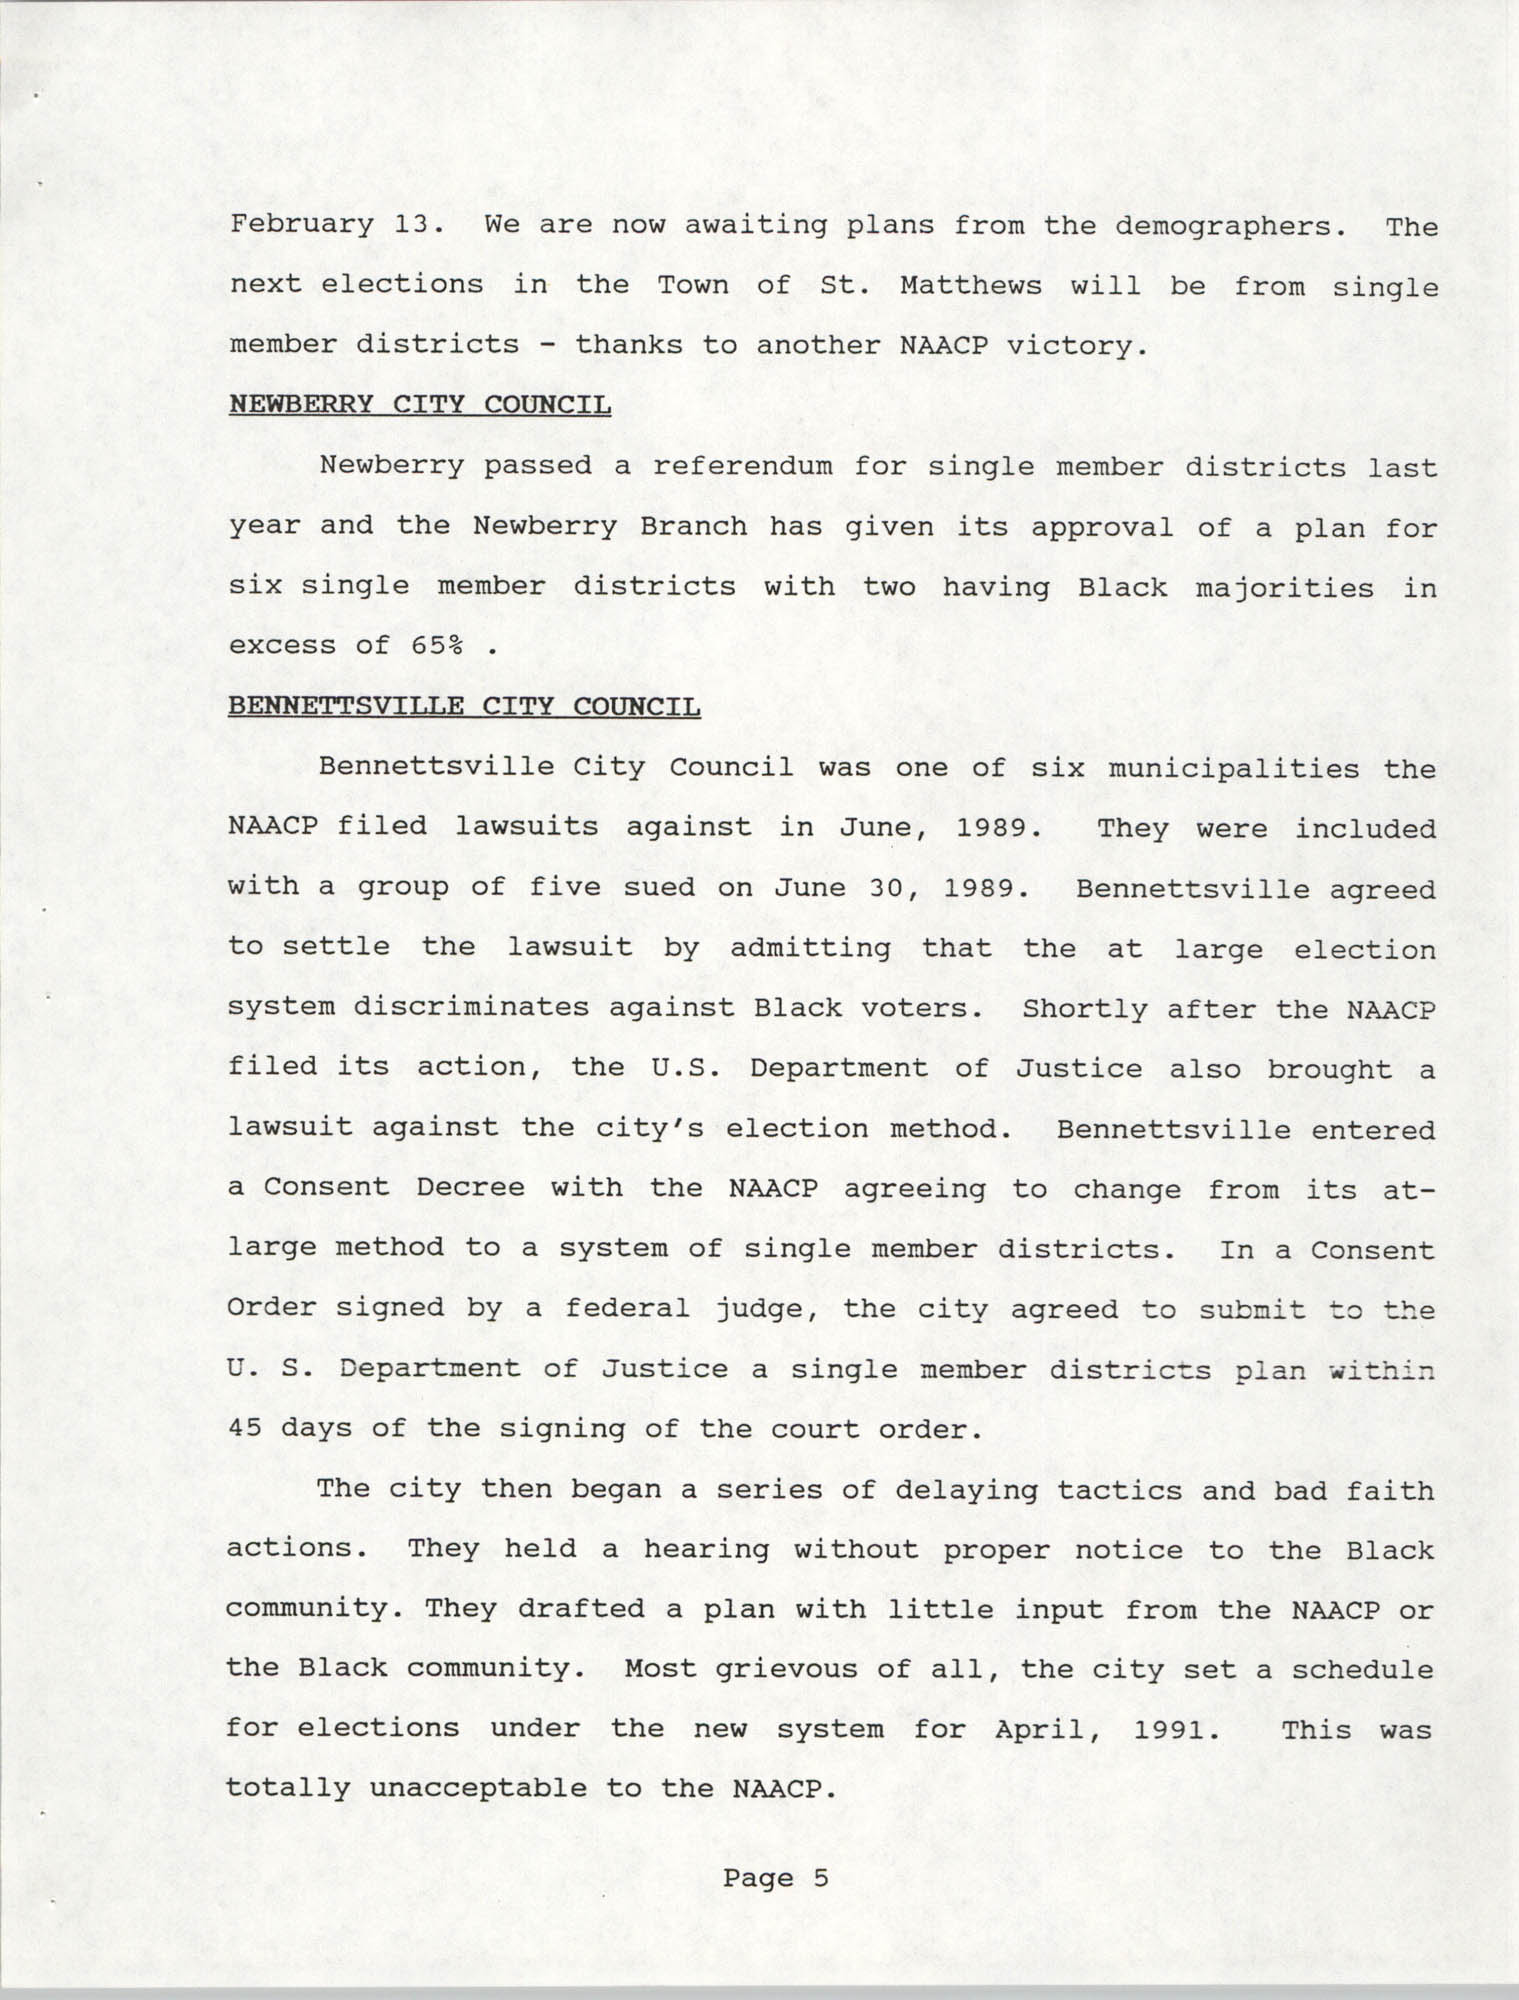 South Carolina Conference of Branches of the NAACP, 1990 Annual Report, Part One, Page 5